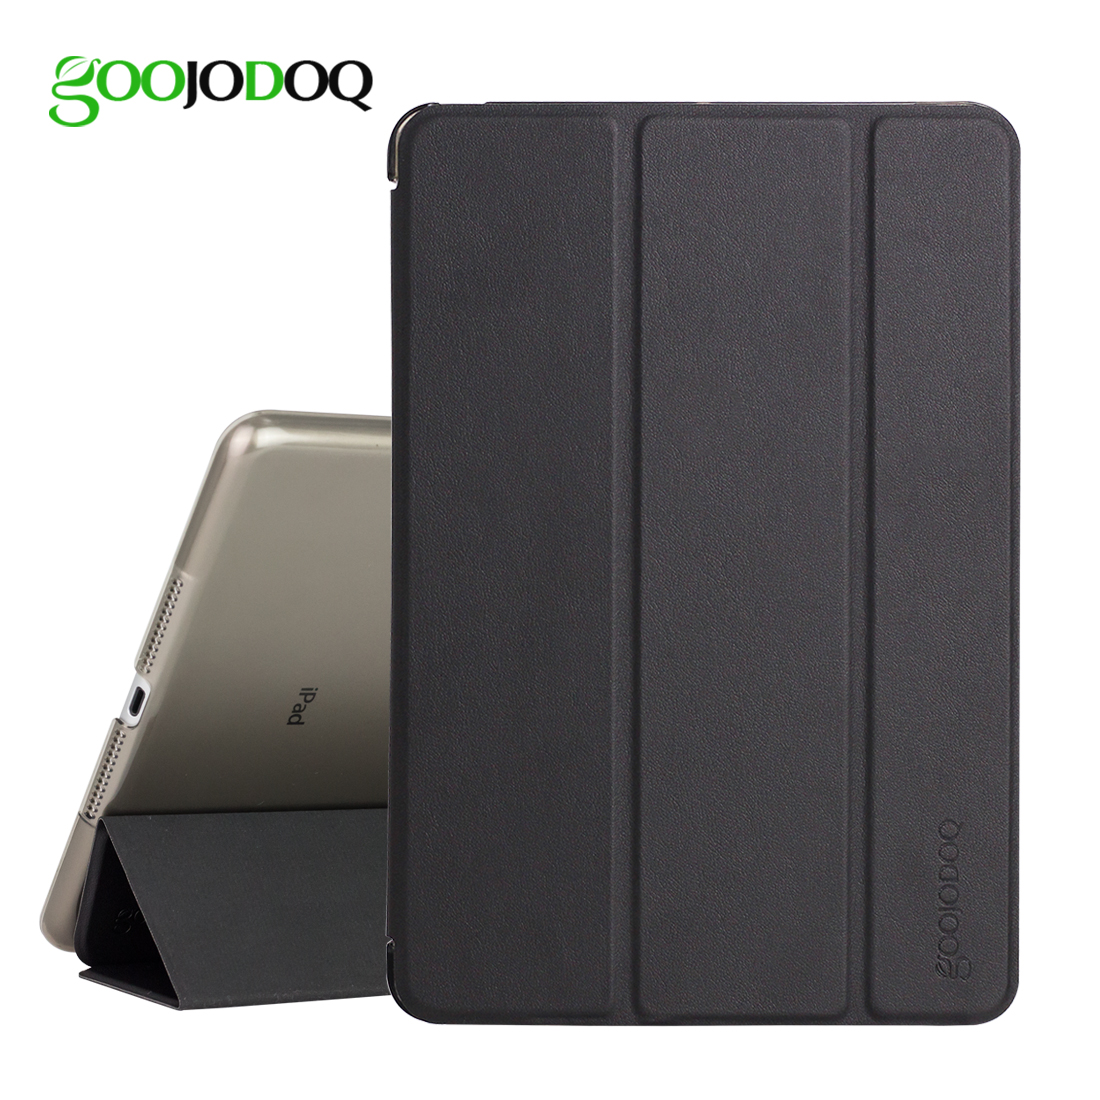 For iPad 9.7 2017 Case,GOOJODOQ Ultra Slim PU Leather Smart Cover+PC Hard Back Coque Tri-fold Stand for Apple iPad 2017 2018 slim smart case for ipad mini 1 2 3 4 pu leather smart cover transparent pc hard back case tri fold stand for apple ipad mini 4